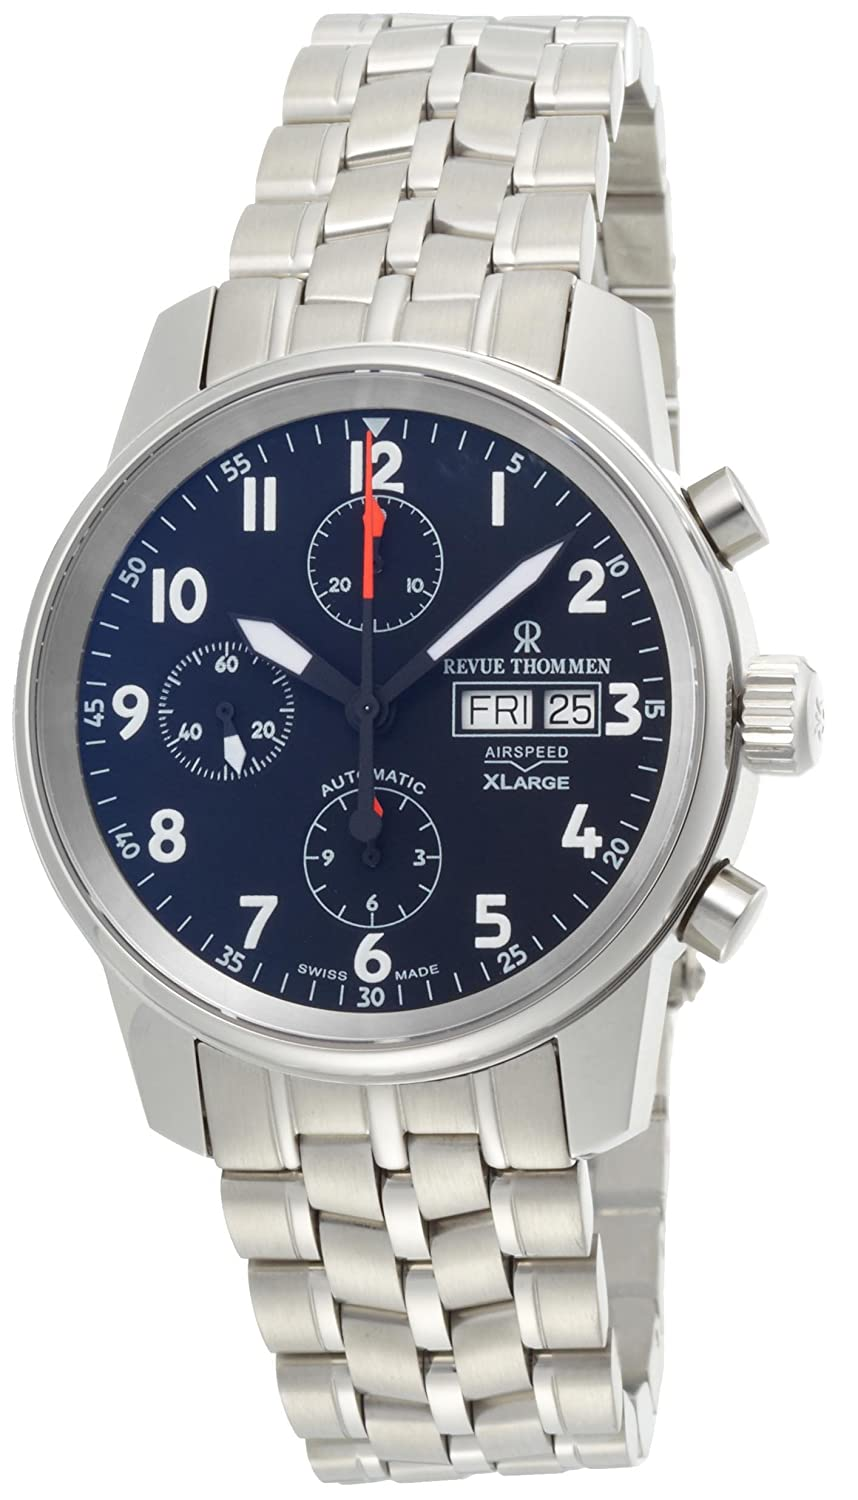 Revue Thommen Men s 16051-6137 Airspeed XLarge Chronograph Automatic Black Dial Watch